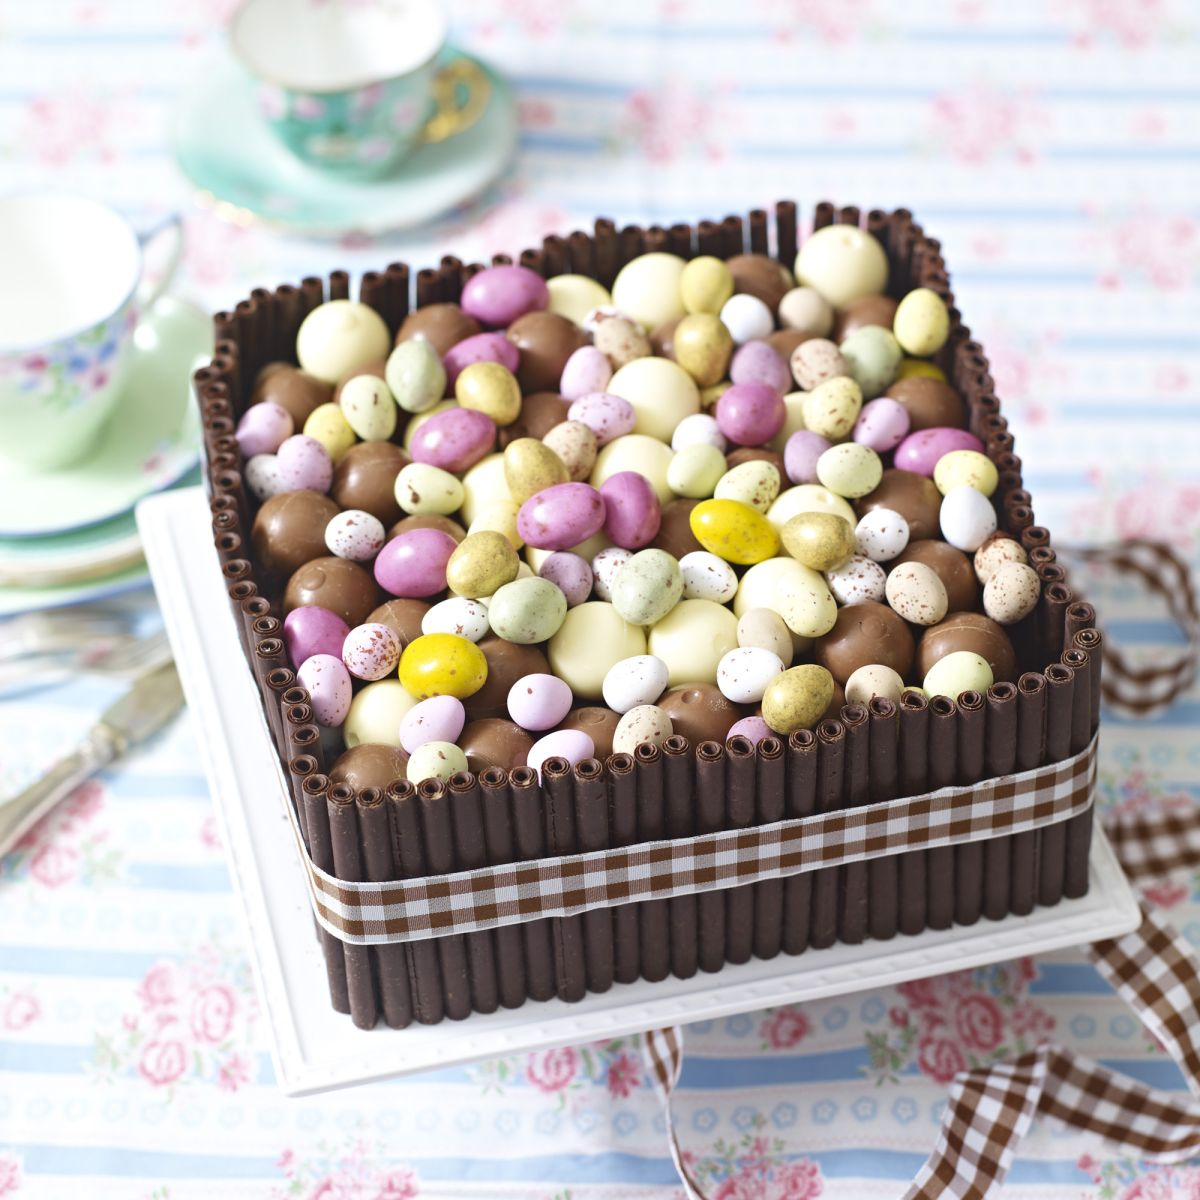 Chocolate fans will love this Easter sweet cake